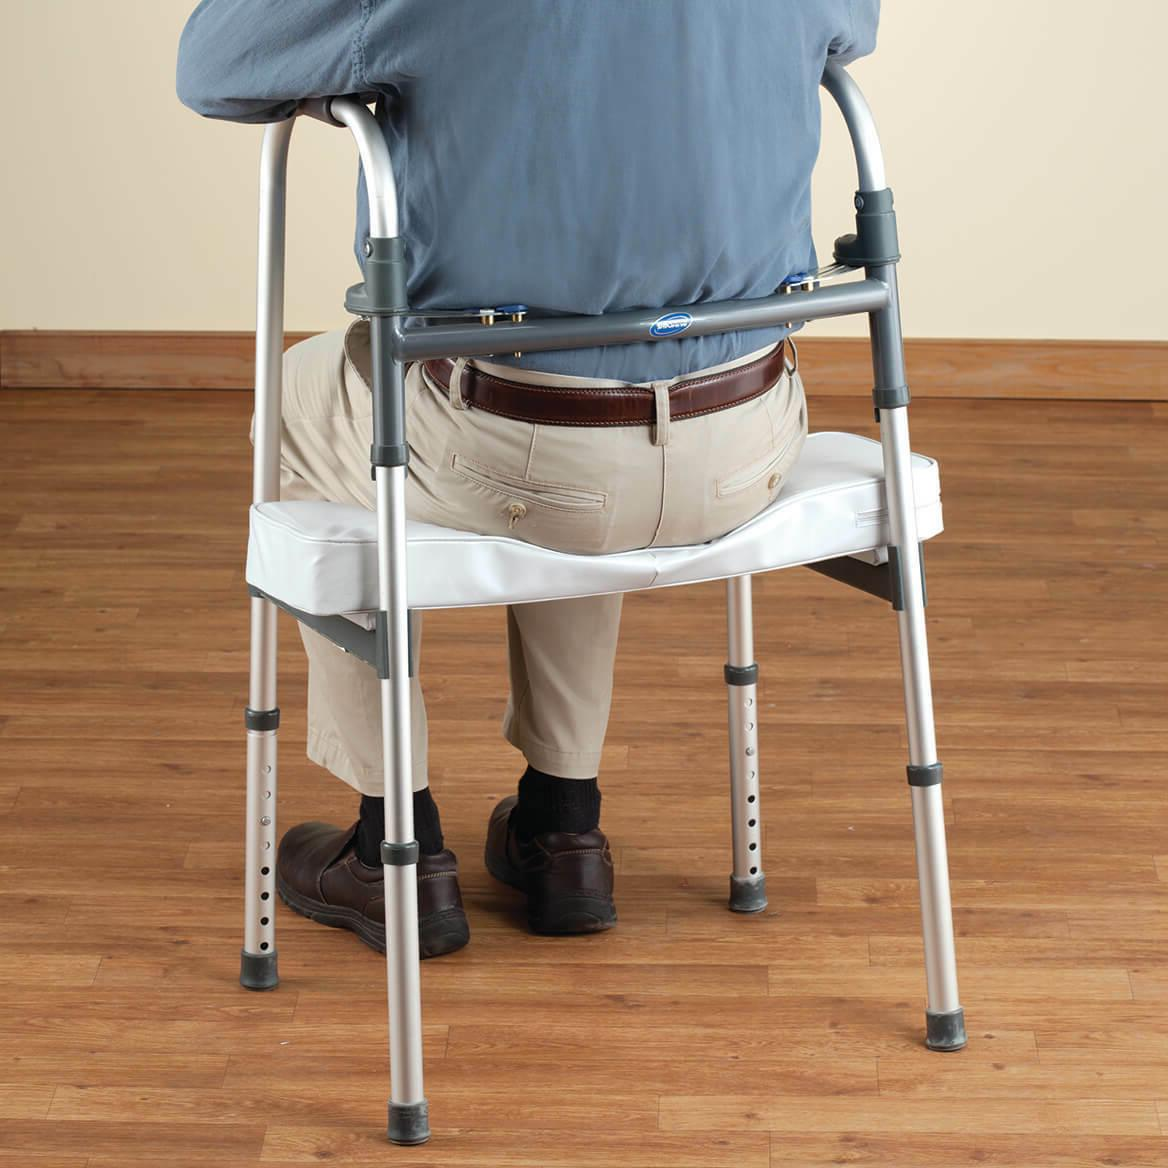 Walker Rest Seat- Attachable Seat for Folding Walker Support